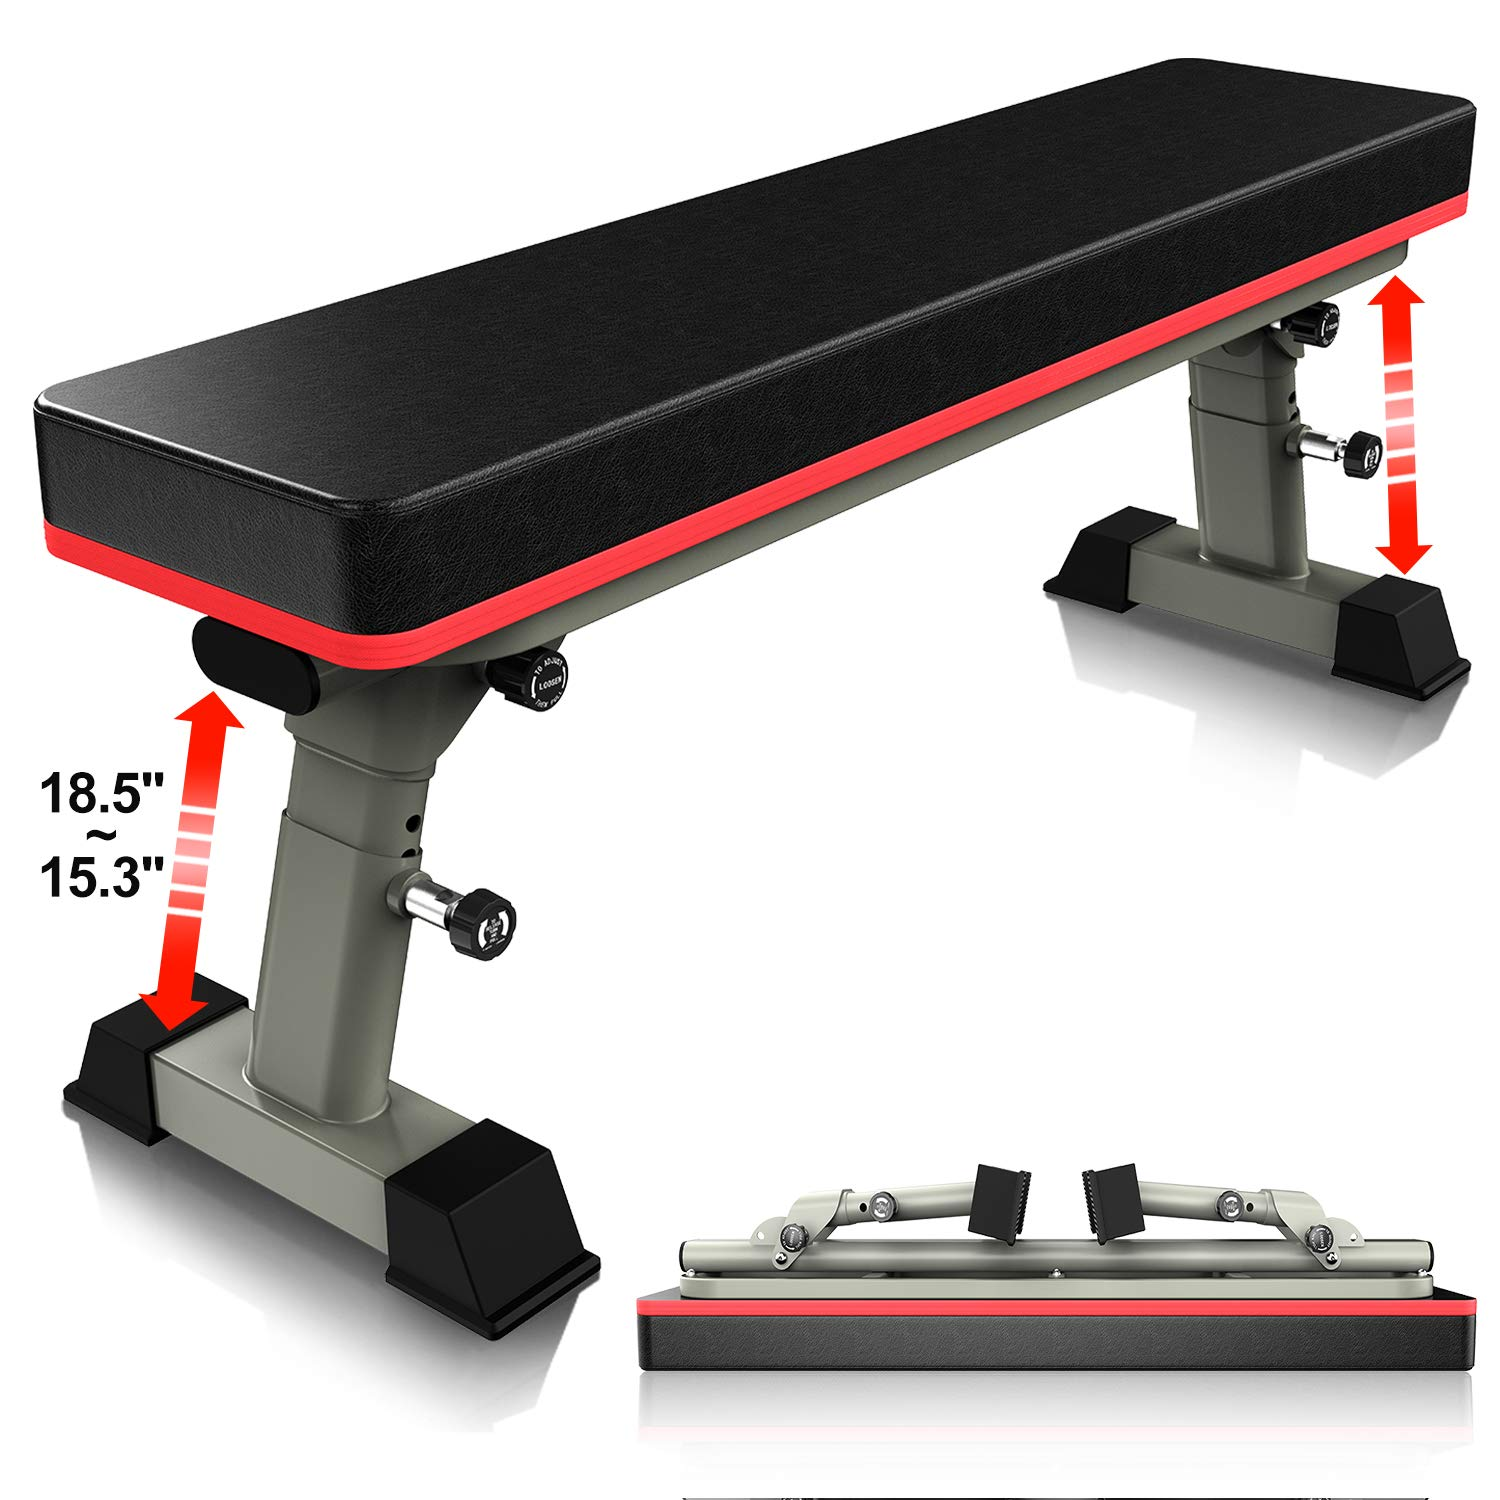 YouTen Adjustable Flat Weight Bench for Body Workout Fitness, 5Positions Abs Exercise Weight Bench with Steel Frame Gray by YouTen